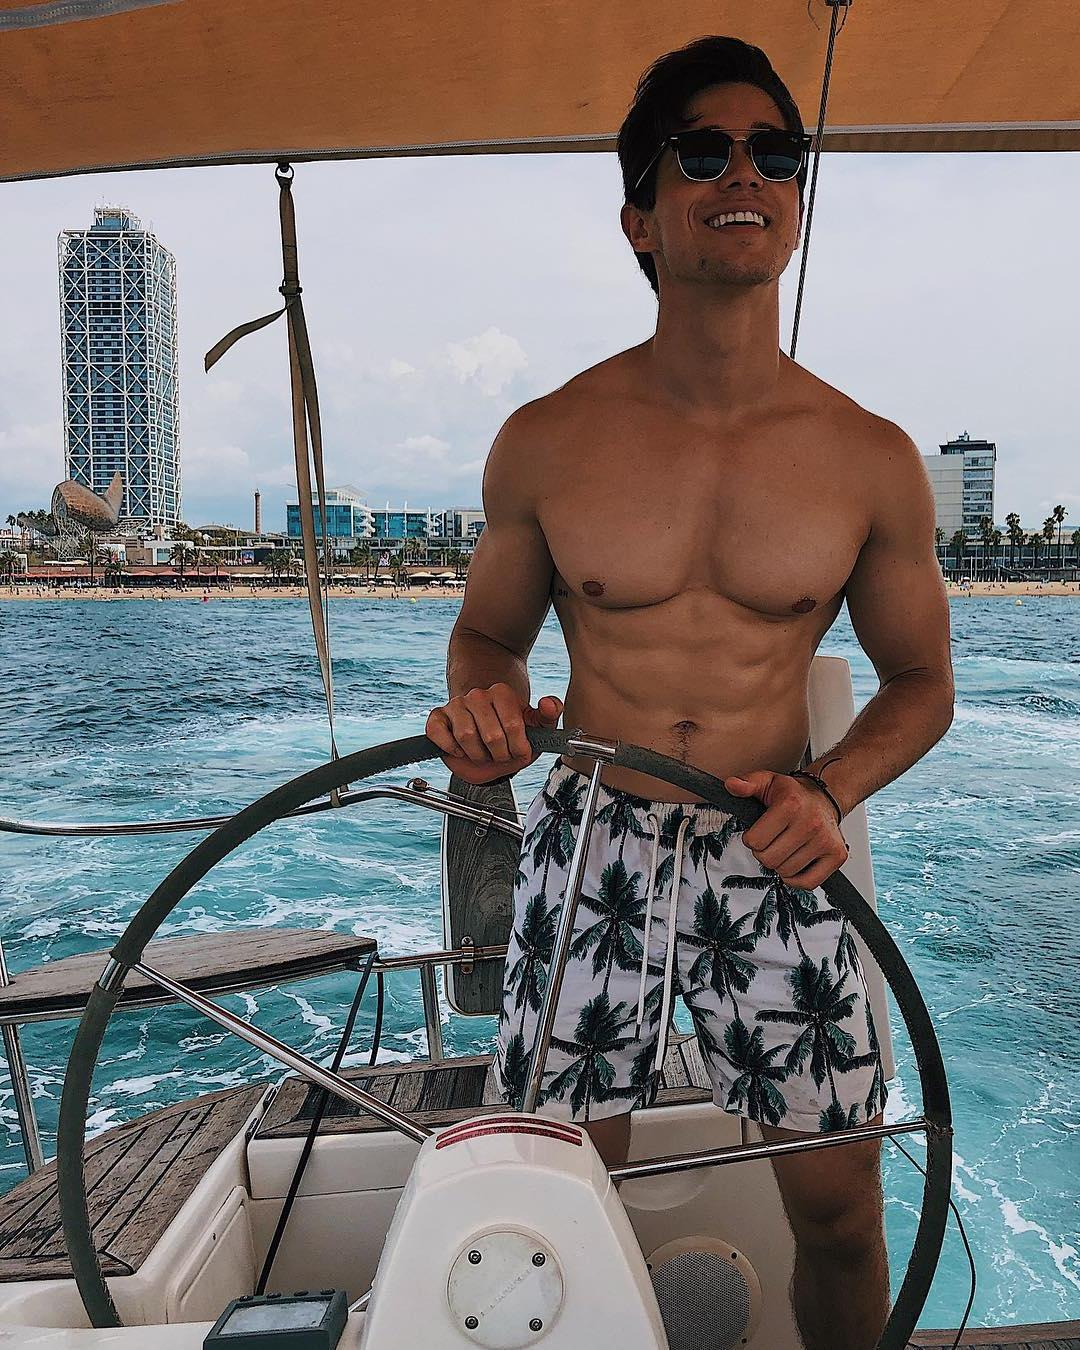 cute-bottom-gay-guys-smiling-fit-shirtless-summer-body-huge-pecs-vacation-boat-ride